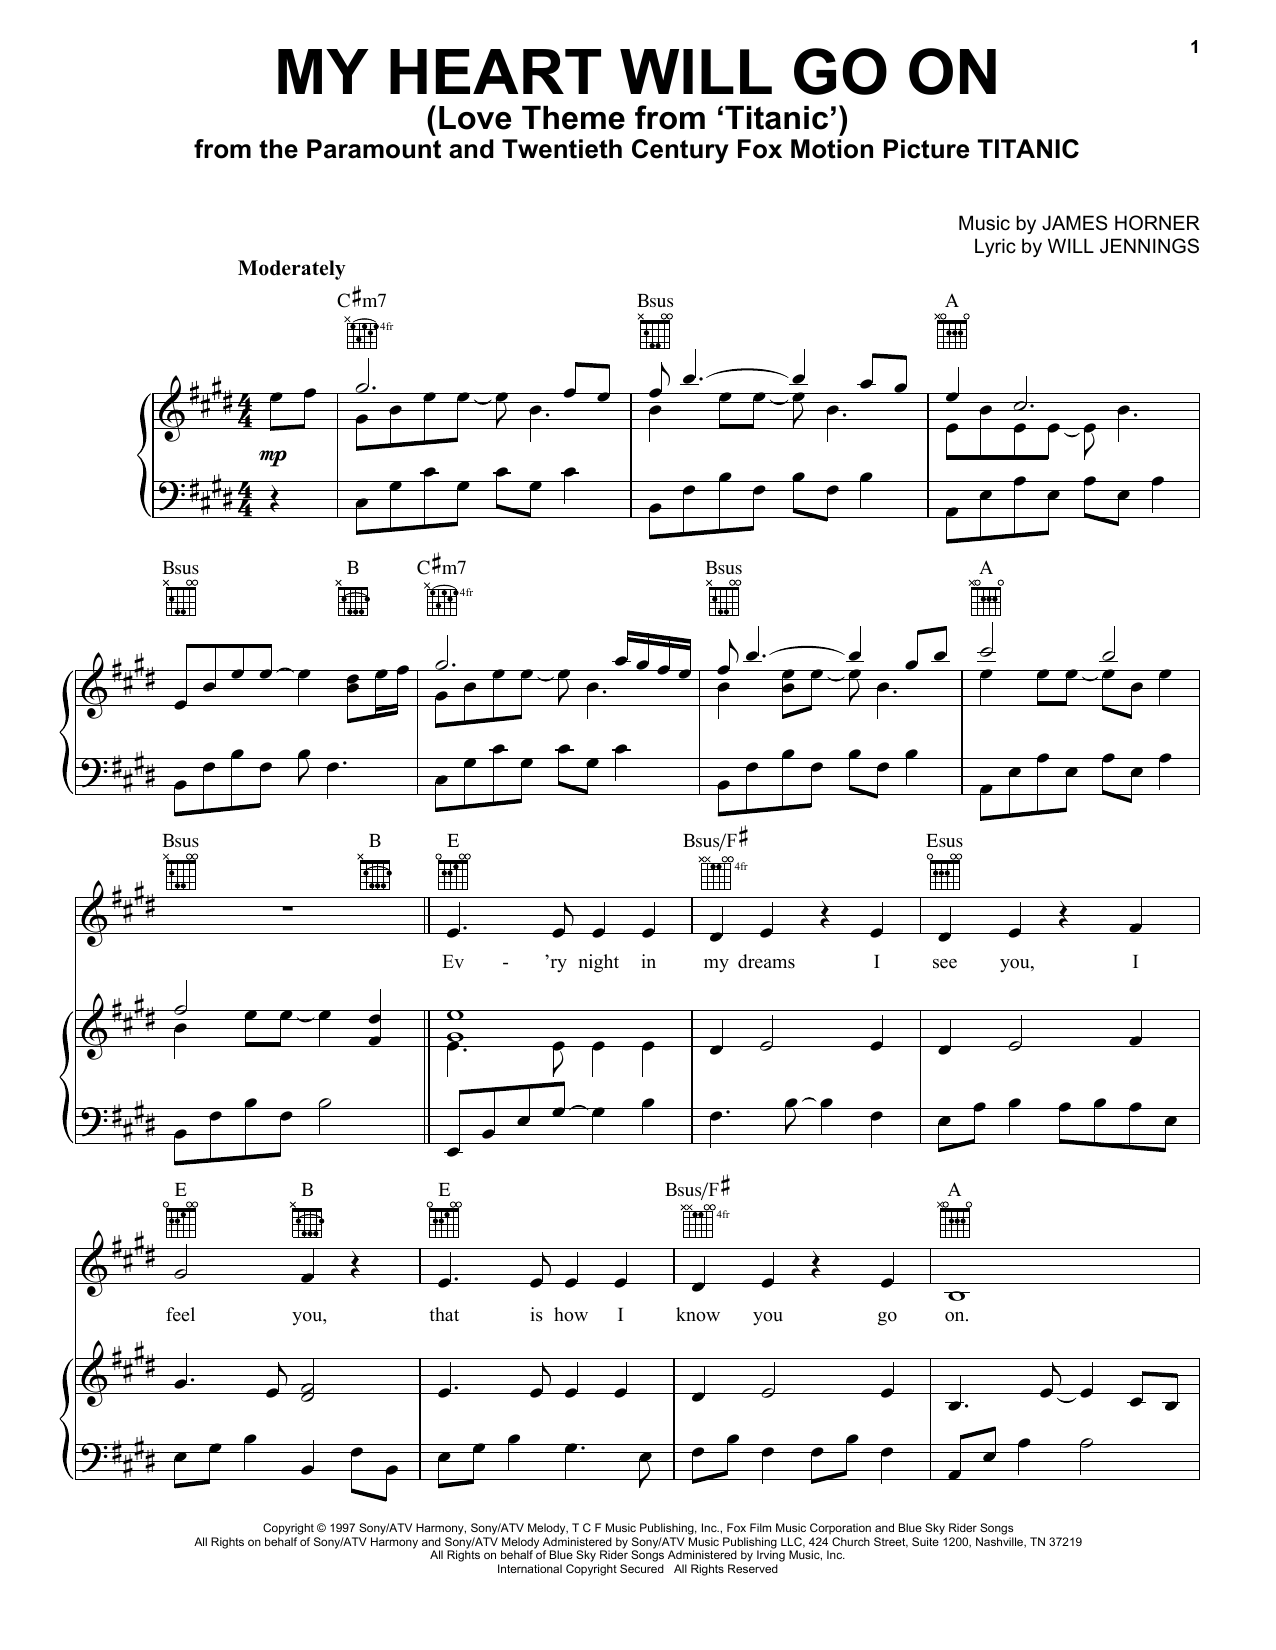 Celine Dion My Heart Will Go On Love Theme From Titanic Sheet Music Notes Chords Score Download Printable Pdf Sheet Music Notes Hymn Sheet Music Pop Piano Sheet Music